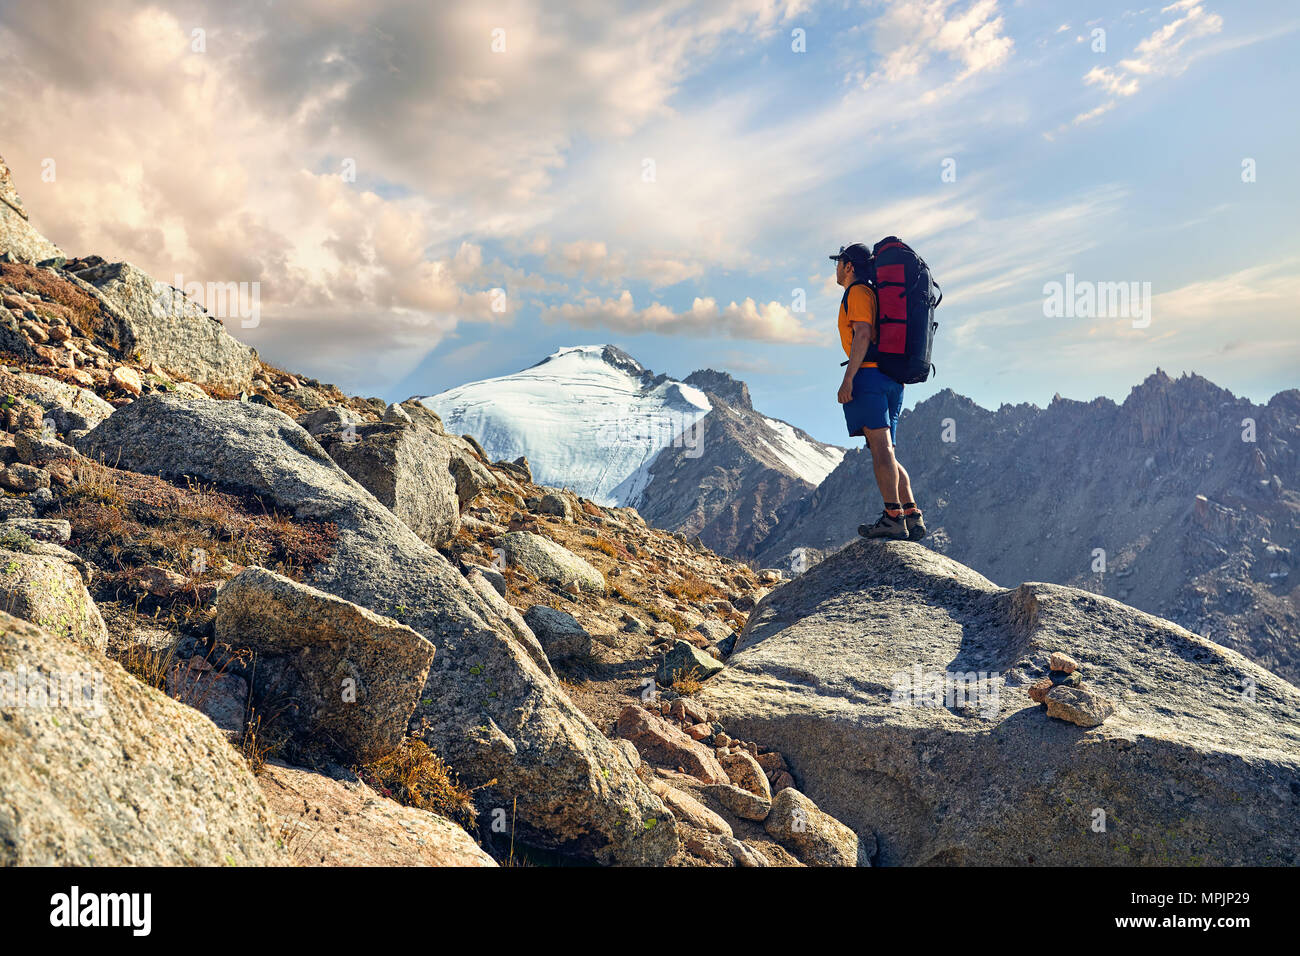 Hiker in orange shirt with big backpack looking on the snowy summit at background - Stock Image